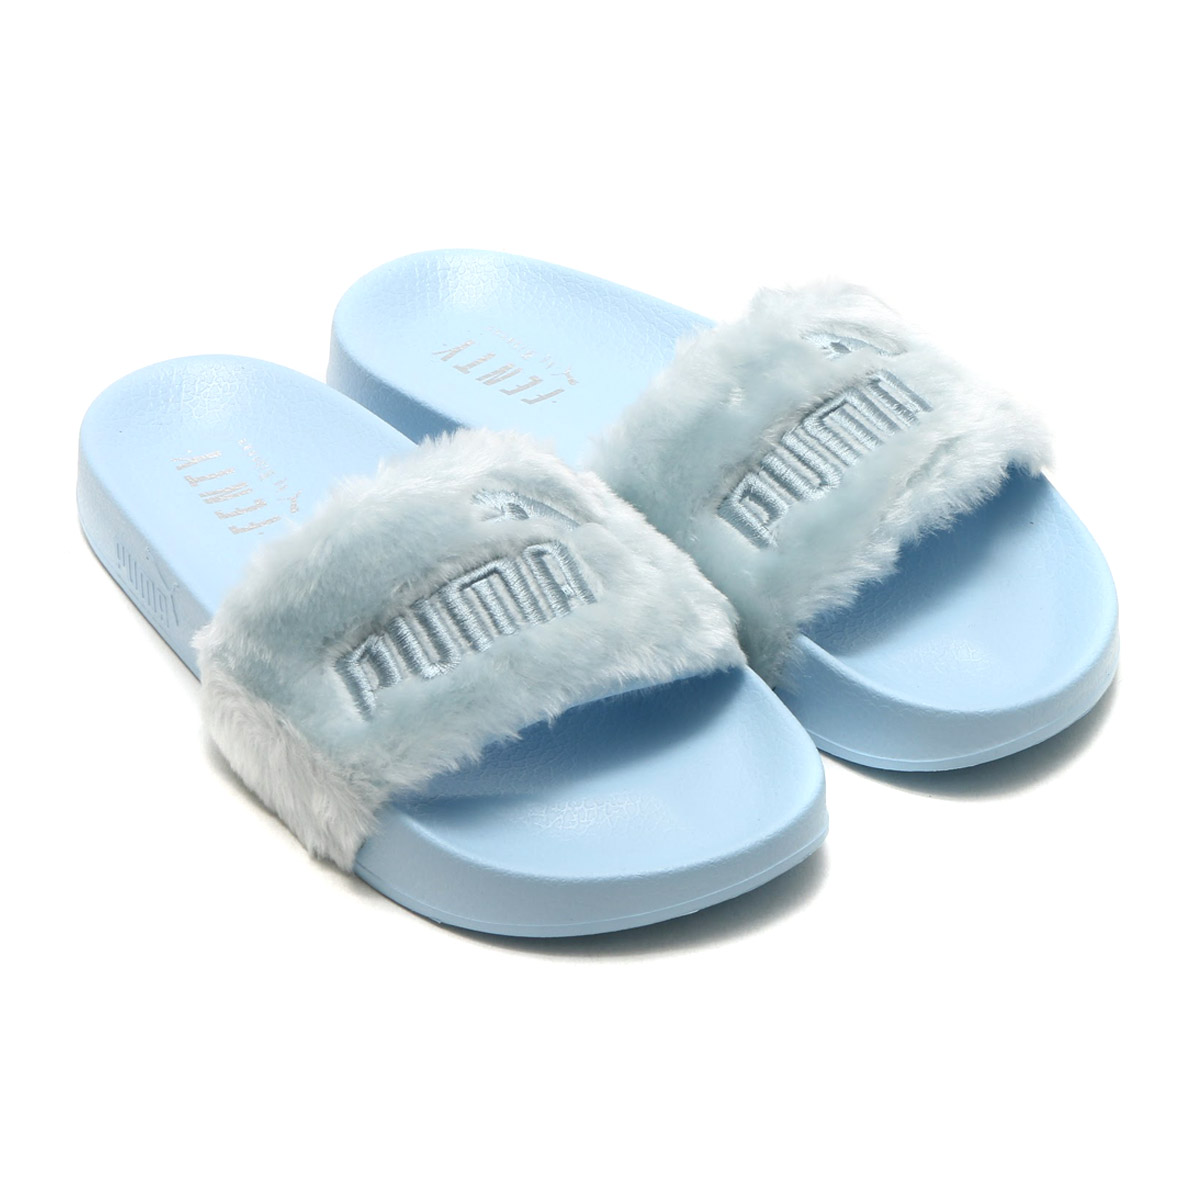 db617e8336c5 atmos pink  PUMA FUR SLIDE WNS (Puma farce ride) COOL BLUE-PUMA ...